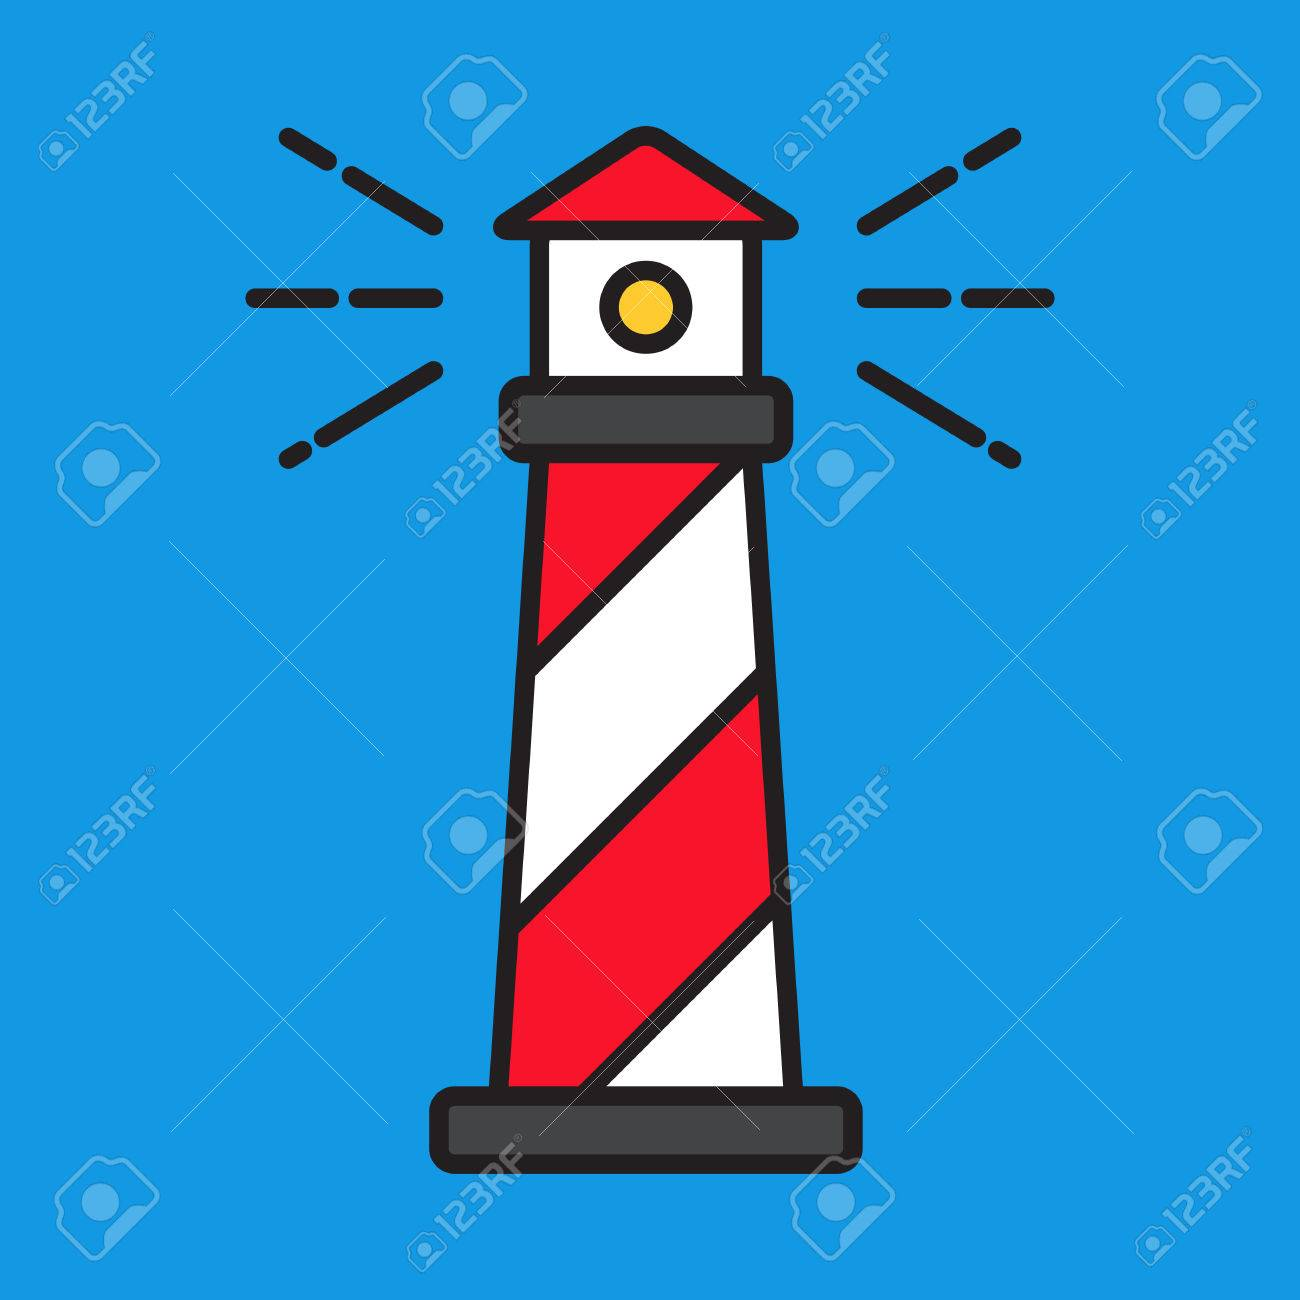 simple line red lighthouse flat vector style royalty free cliparts rh 123rf com Lighthouse Clip Art Collections Lighthouse Clip Art Collections